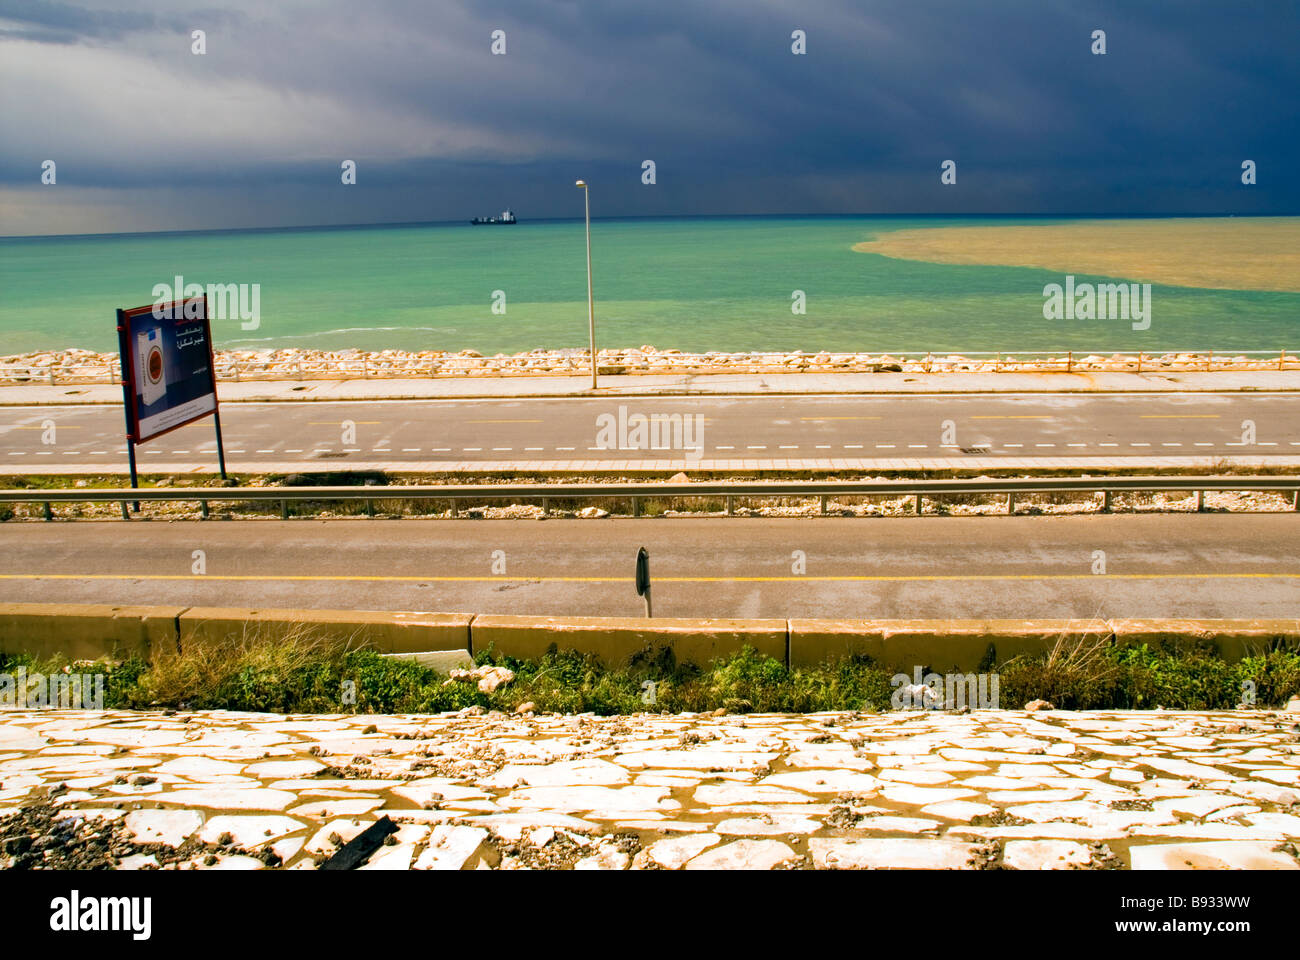 Sur le bord de la route, Beyrouth Liban Photo Stock